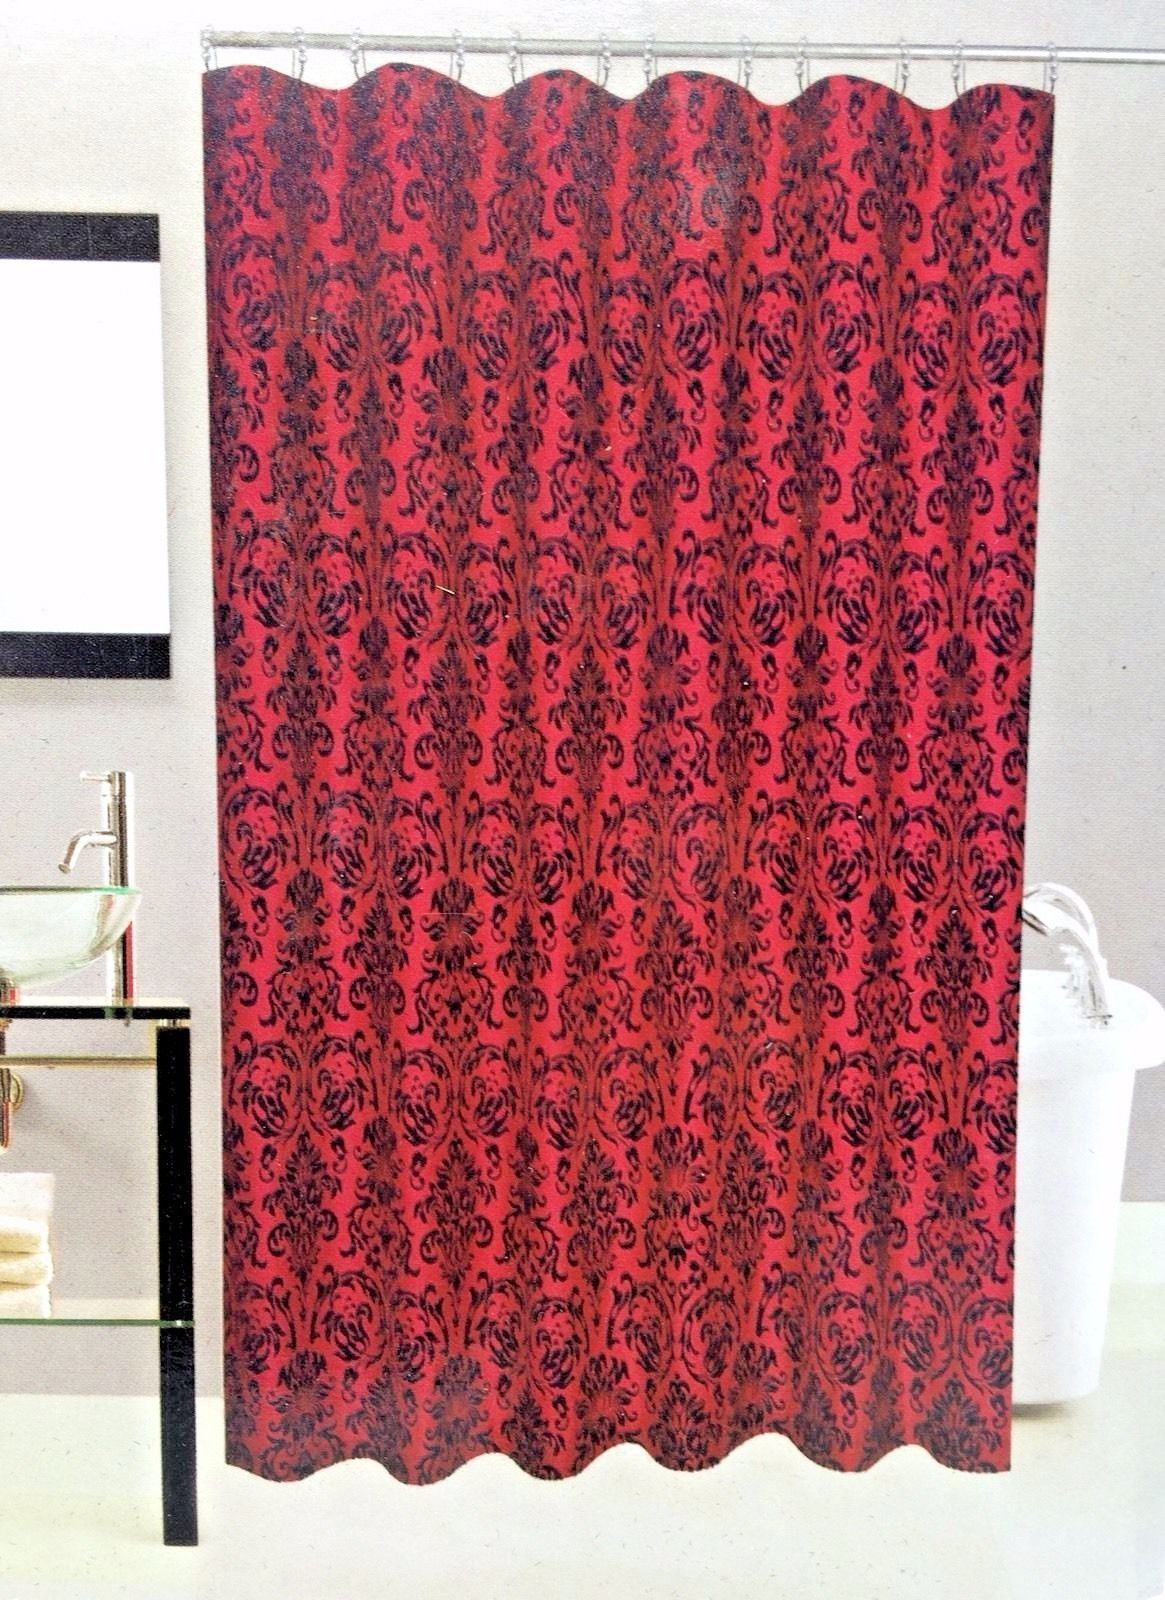 Fabric Shower Curtain Flocked Wine Red Black 70x72 Inch Interiors